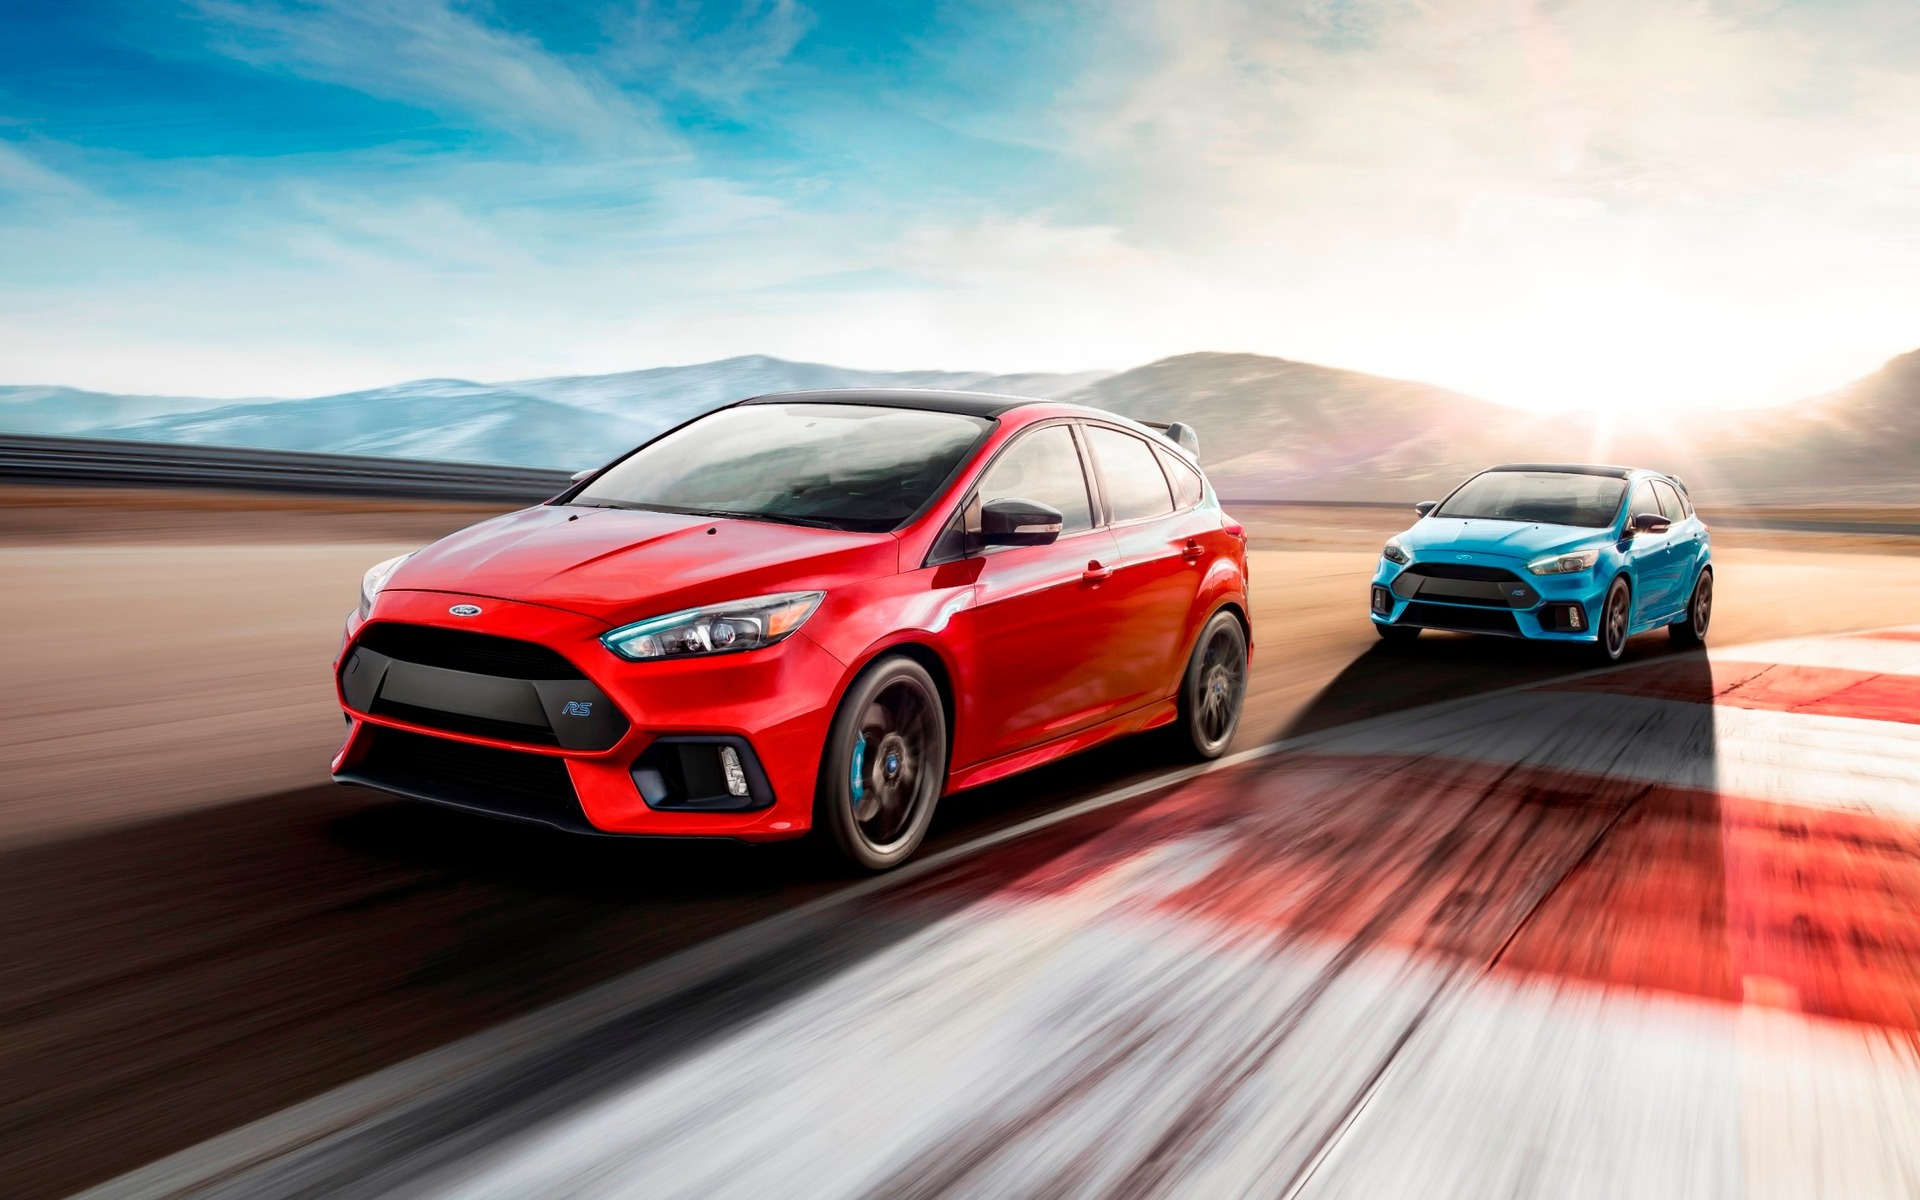 Limited-edition 2018 Ford Focus RS